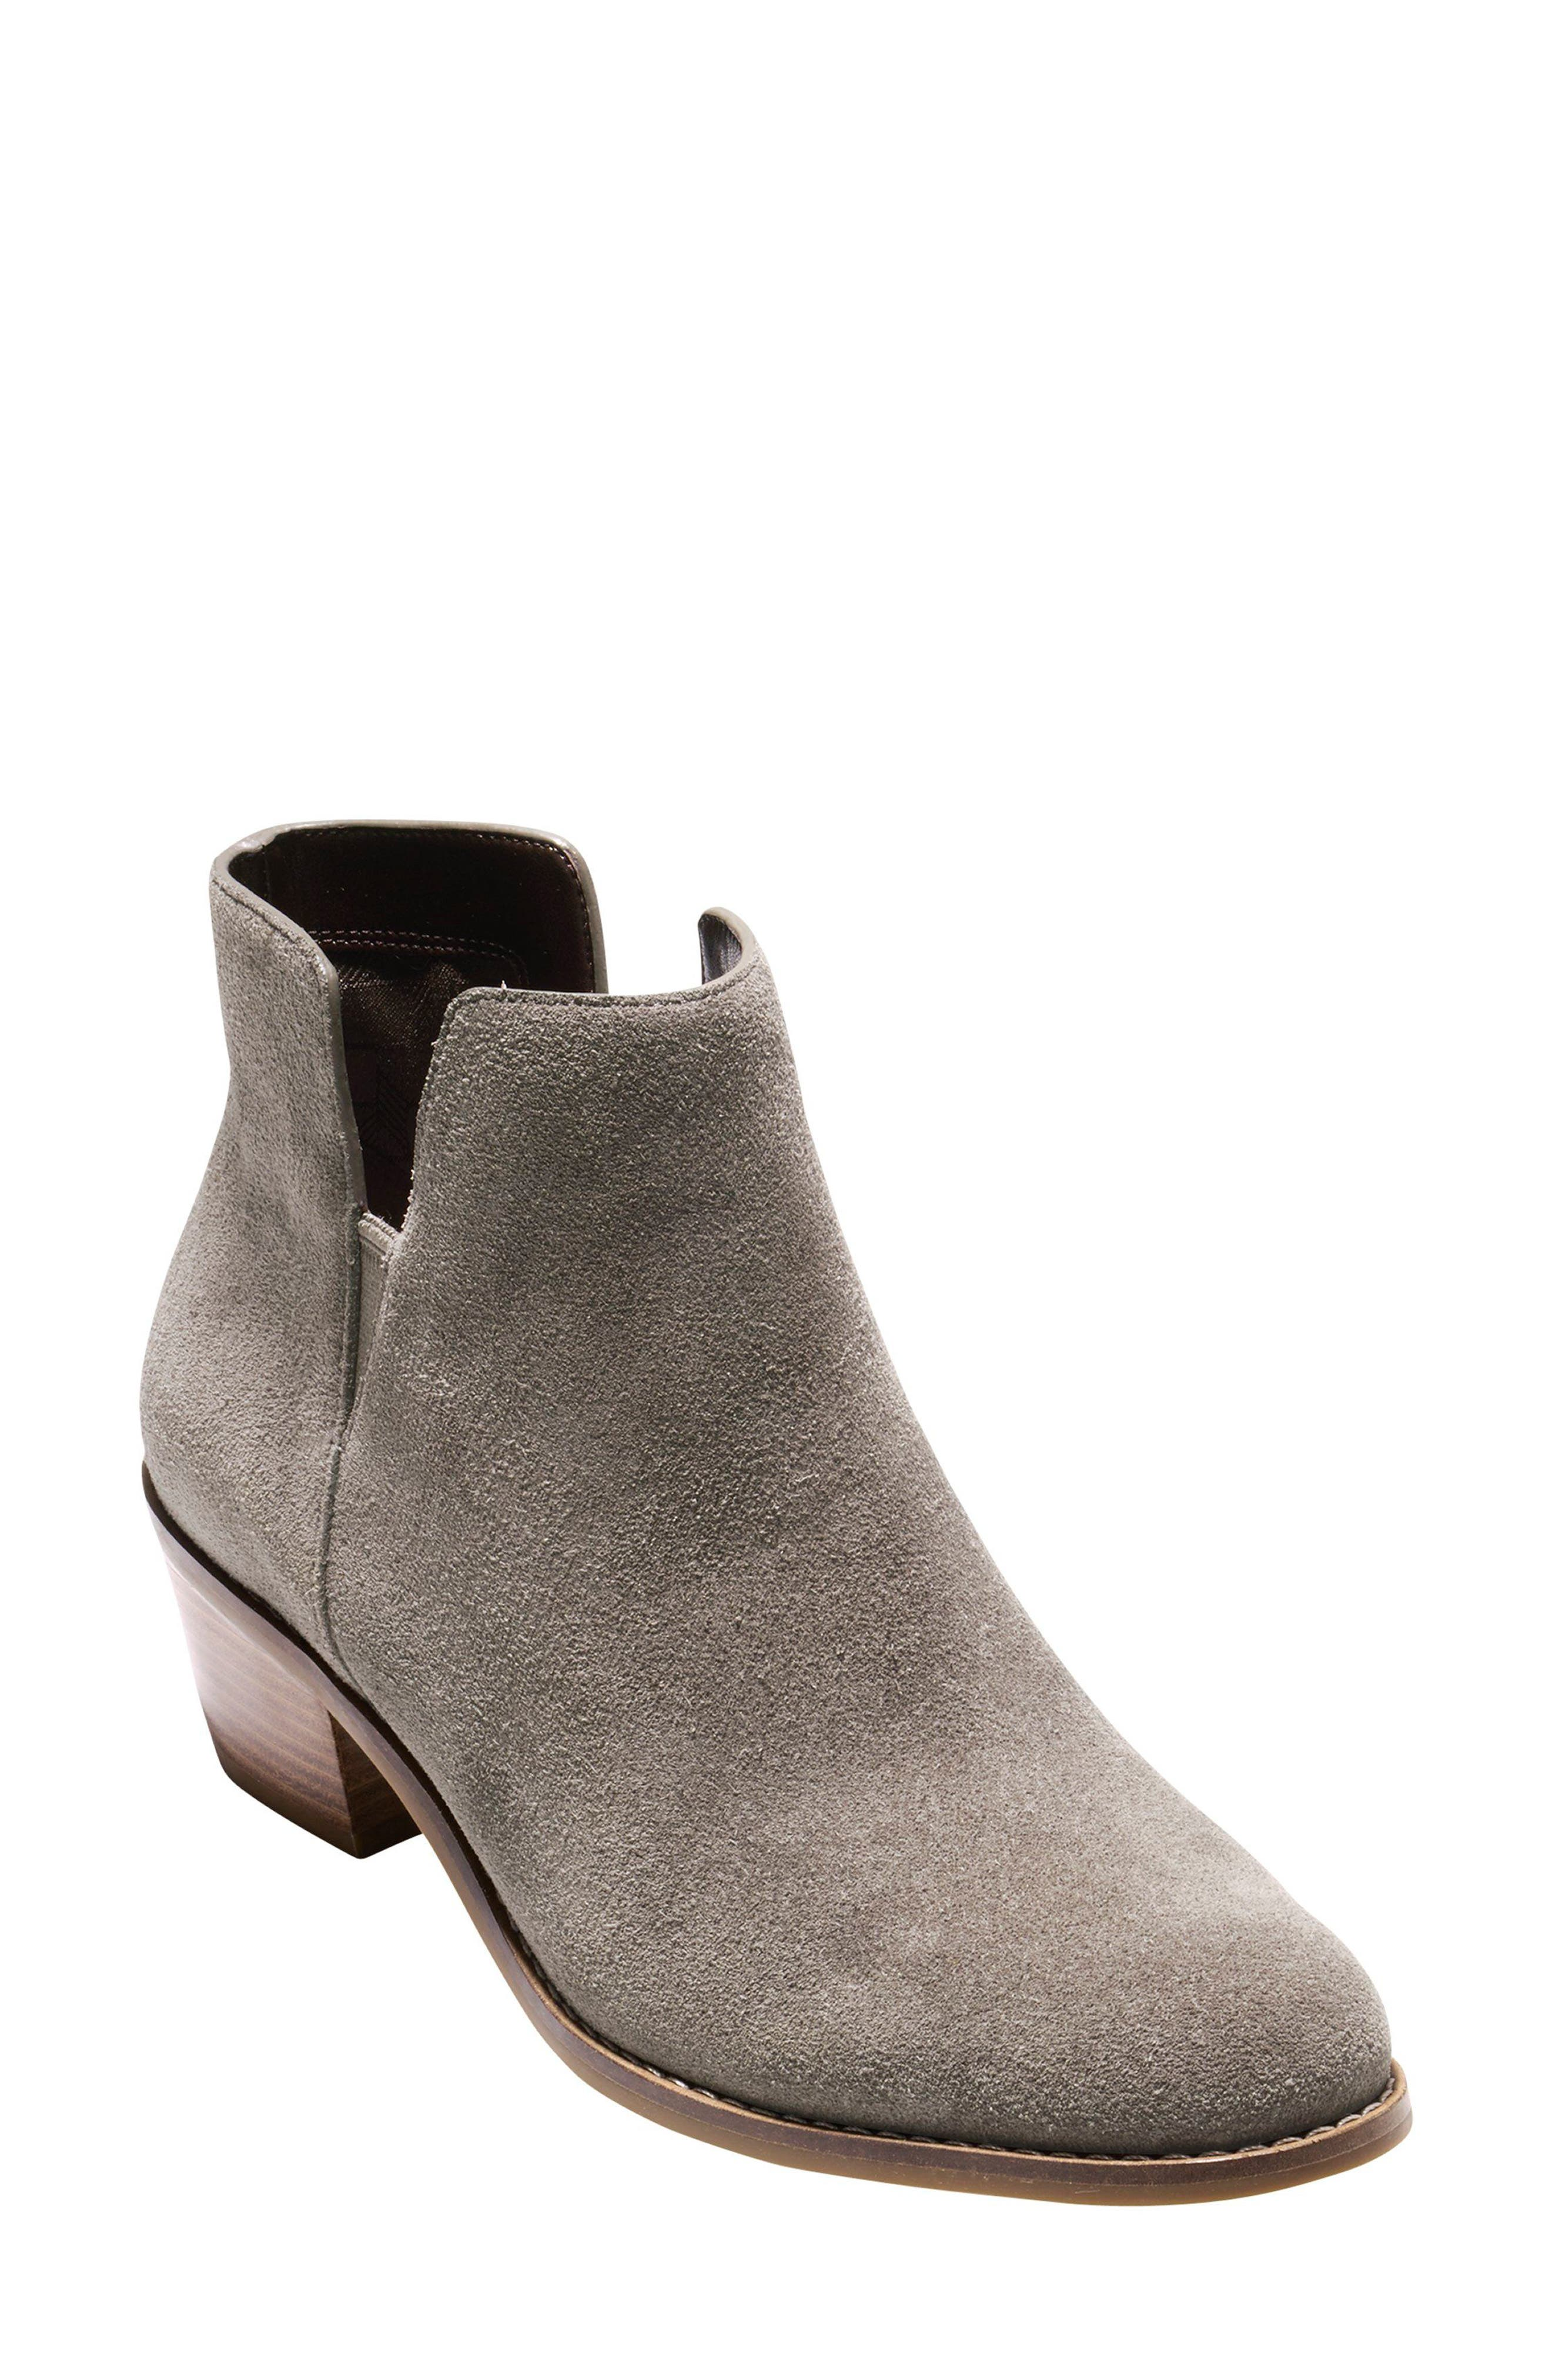 'Abbot' Chelsea Boot,                             Main thumbnail 1, color,